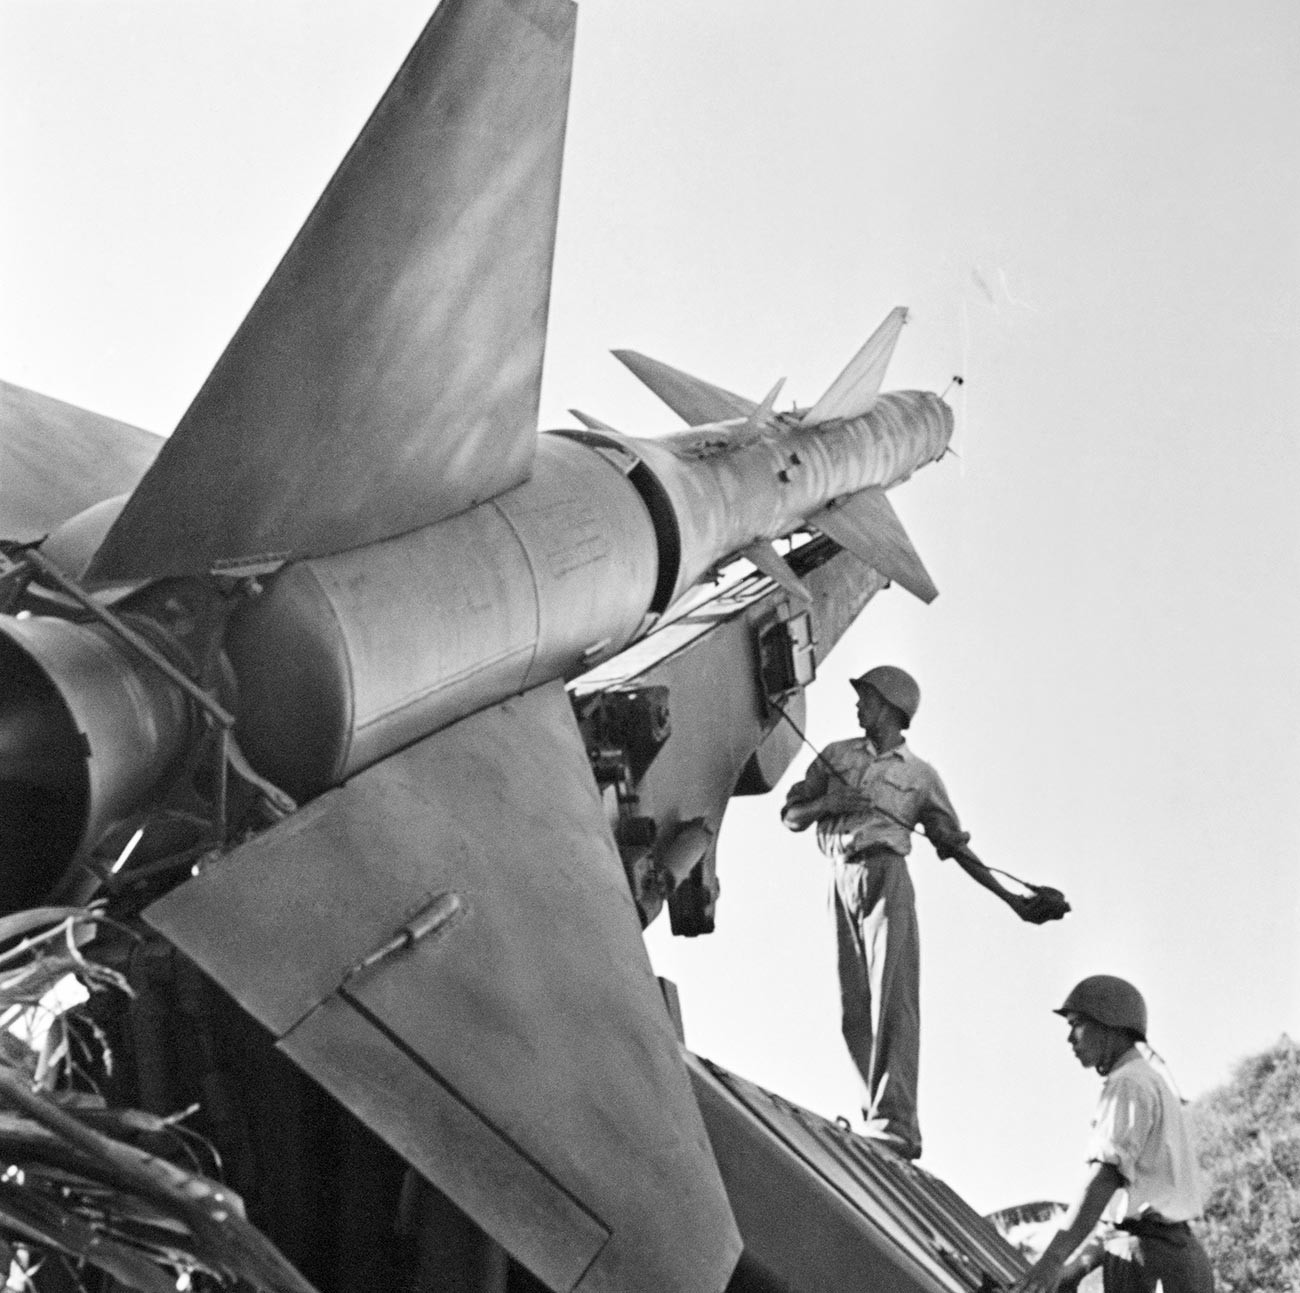 Vietnamese People's Army soldiers stand near the anti-aircraft missile, that protects the city against the U.S. Air Force raids.